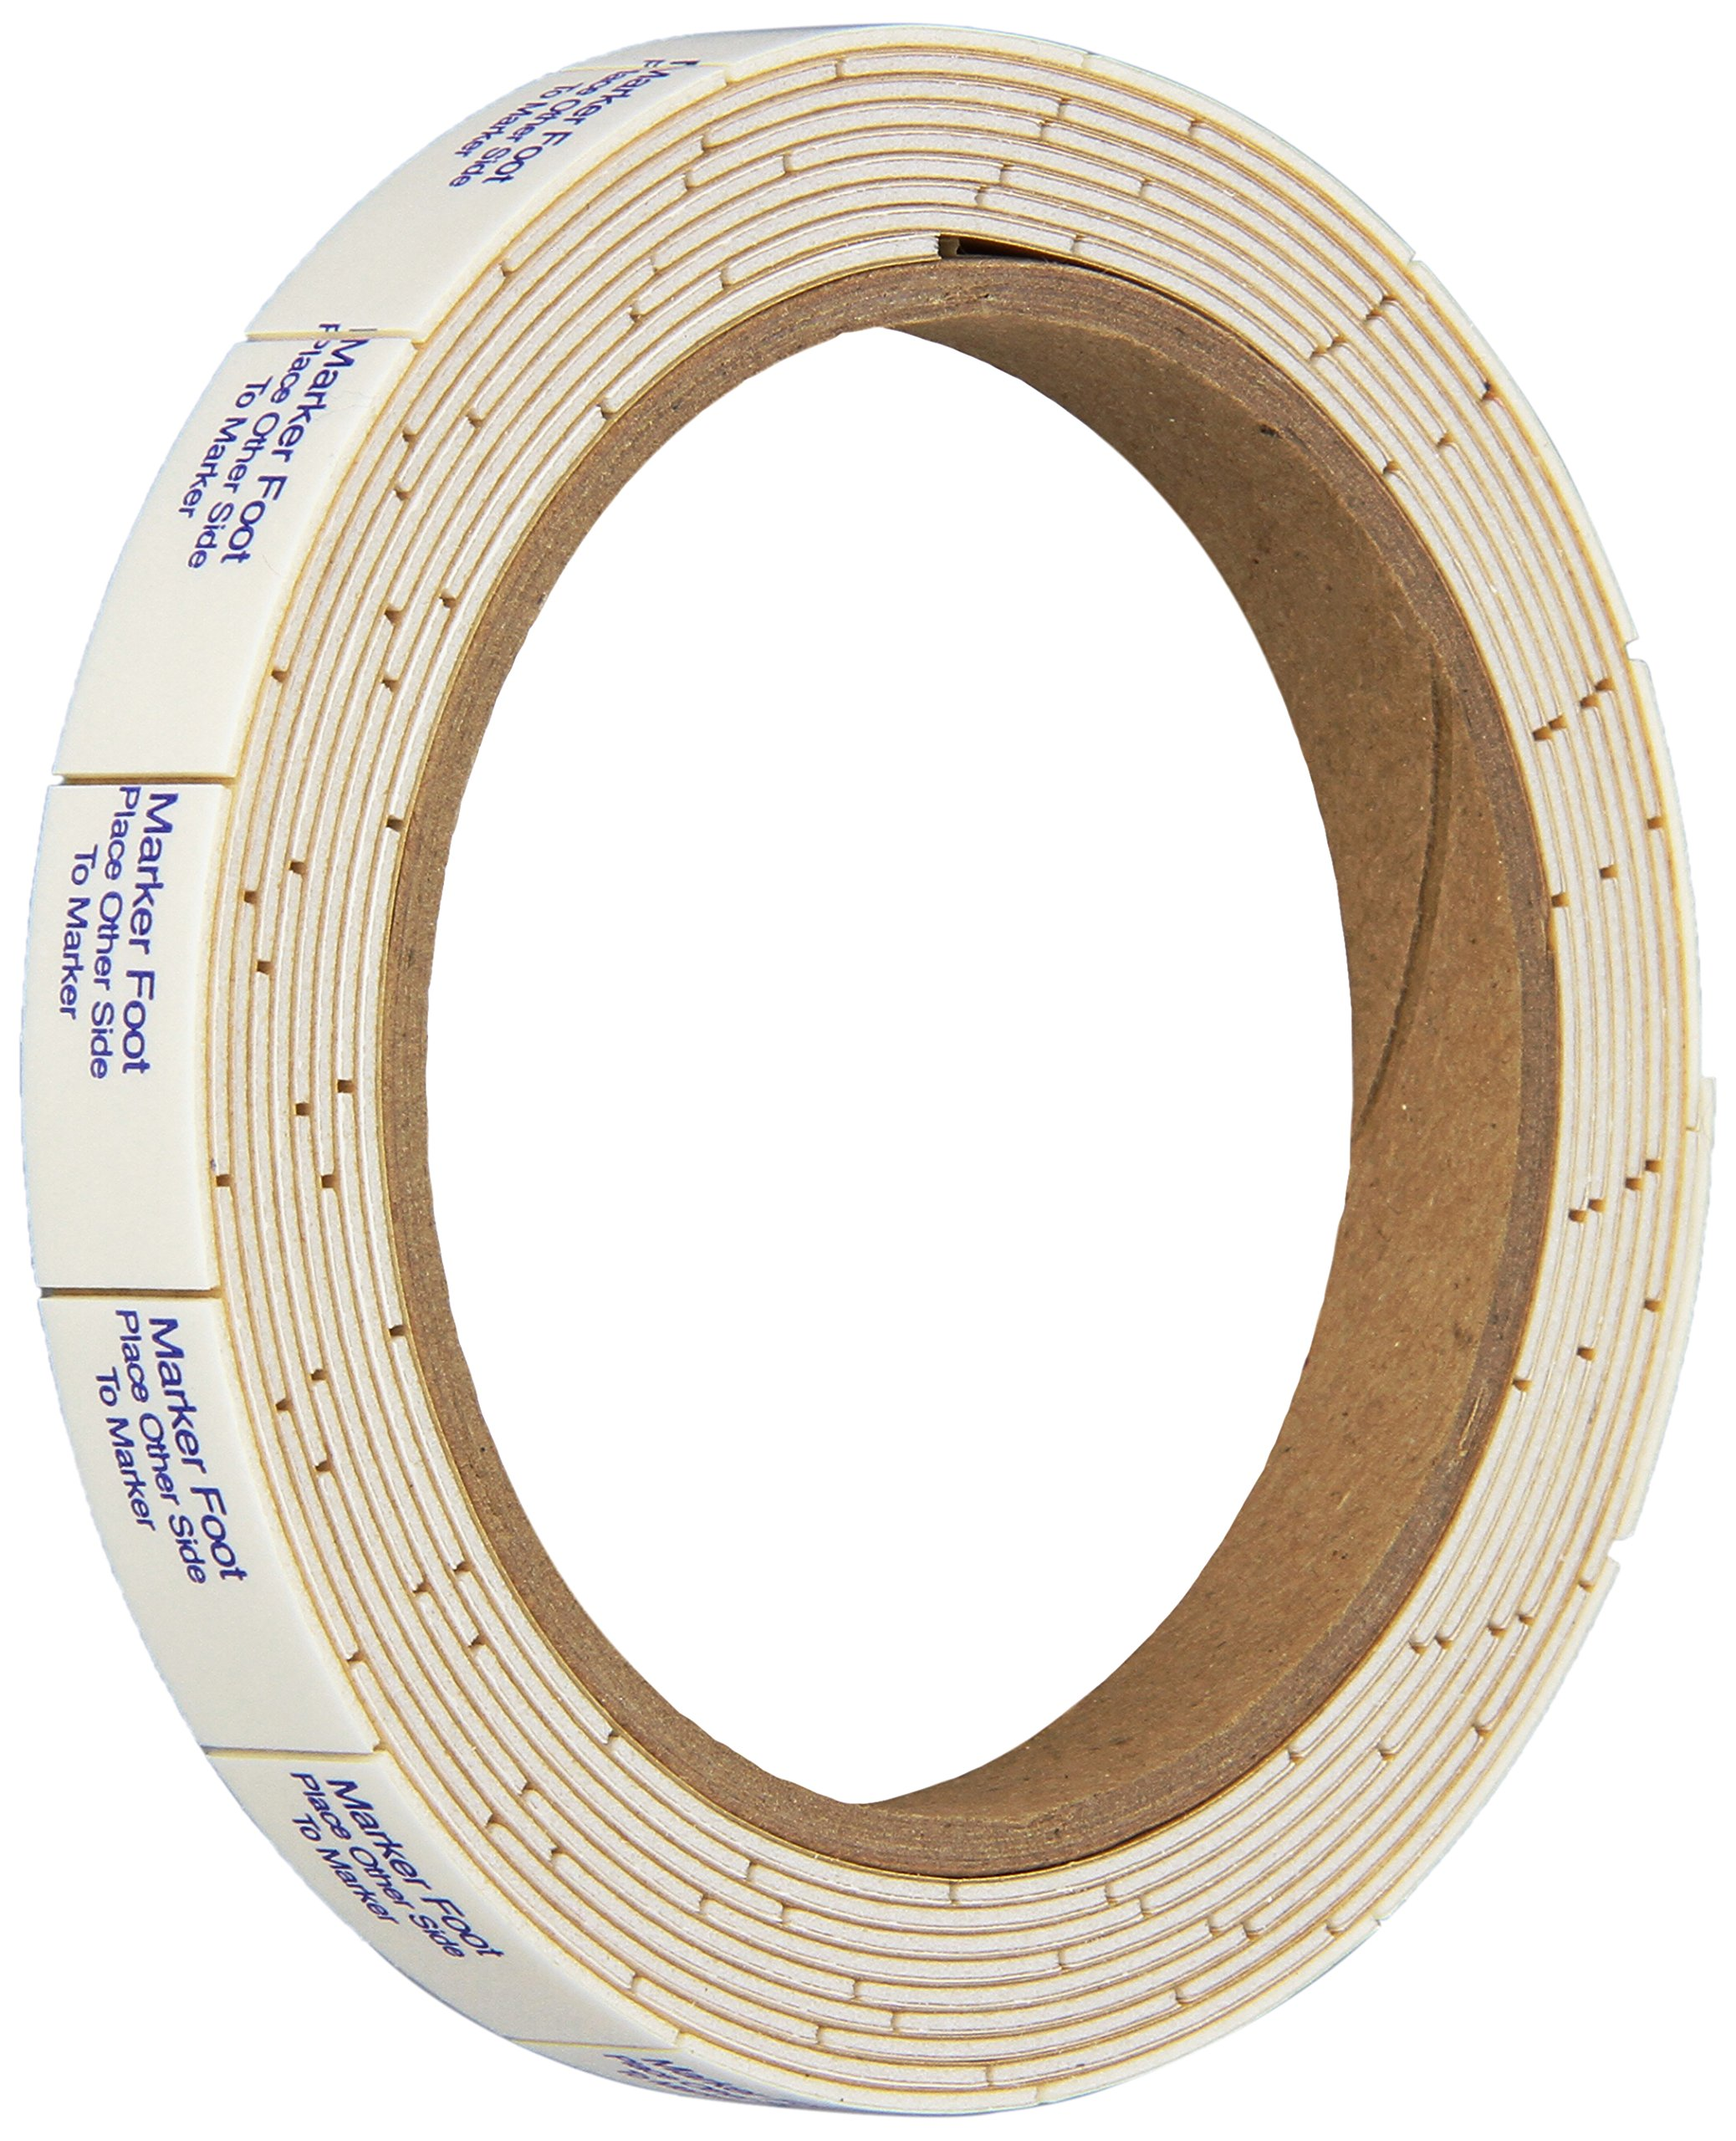 MARKER FOOT MRK-499 X-Ray Marker Accessory, Tape (Pack of 100)